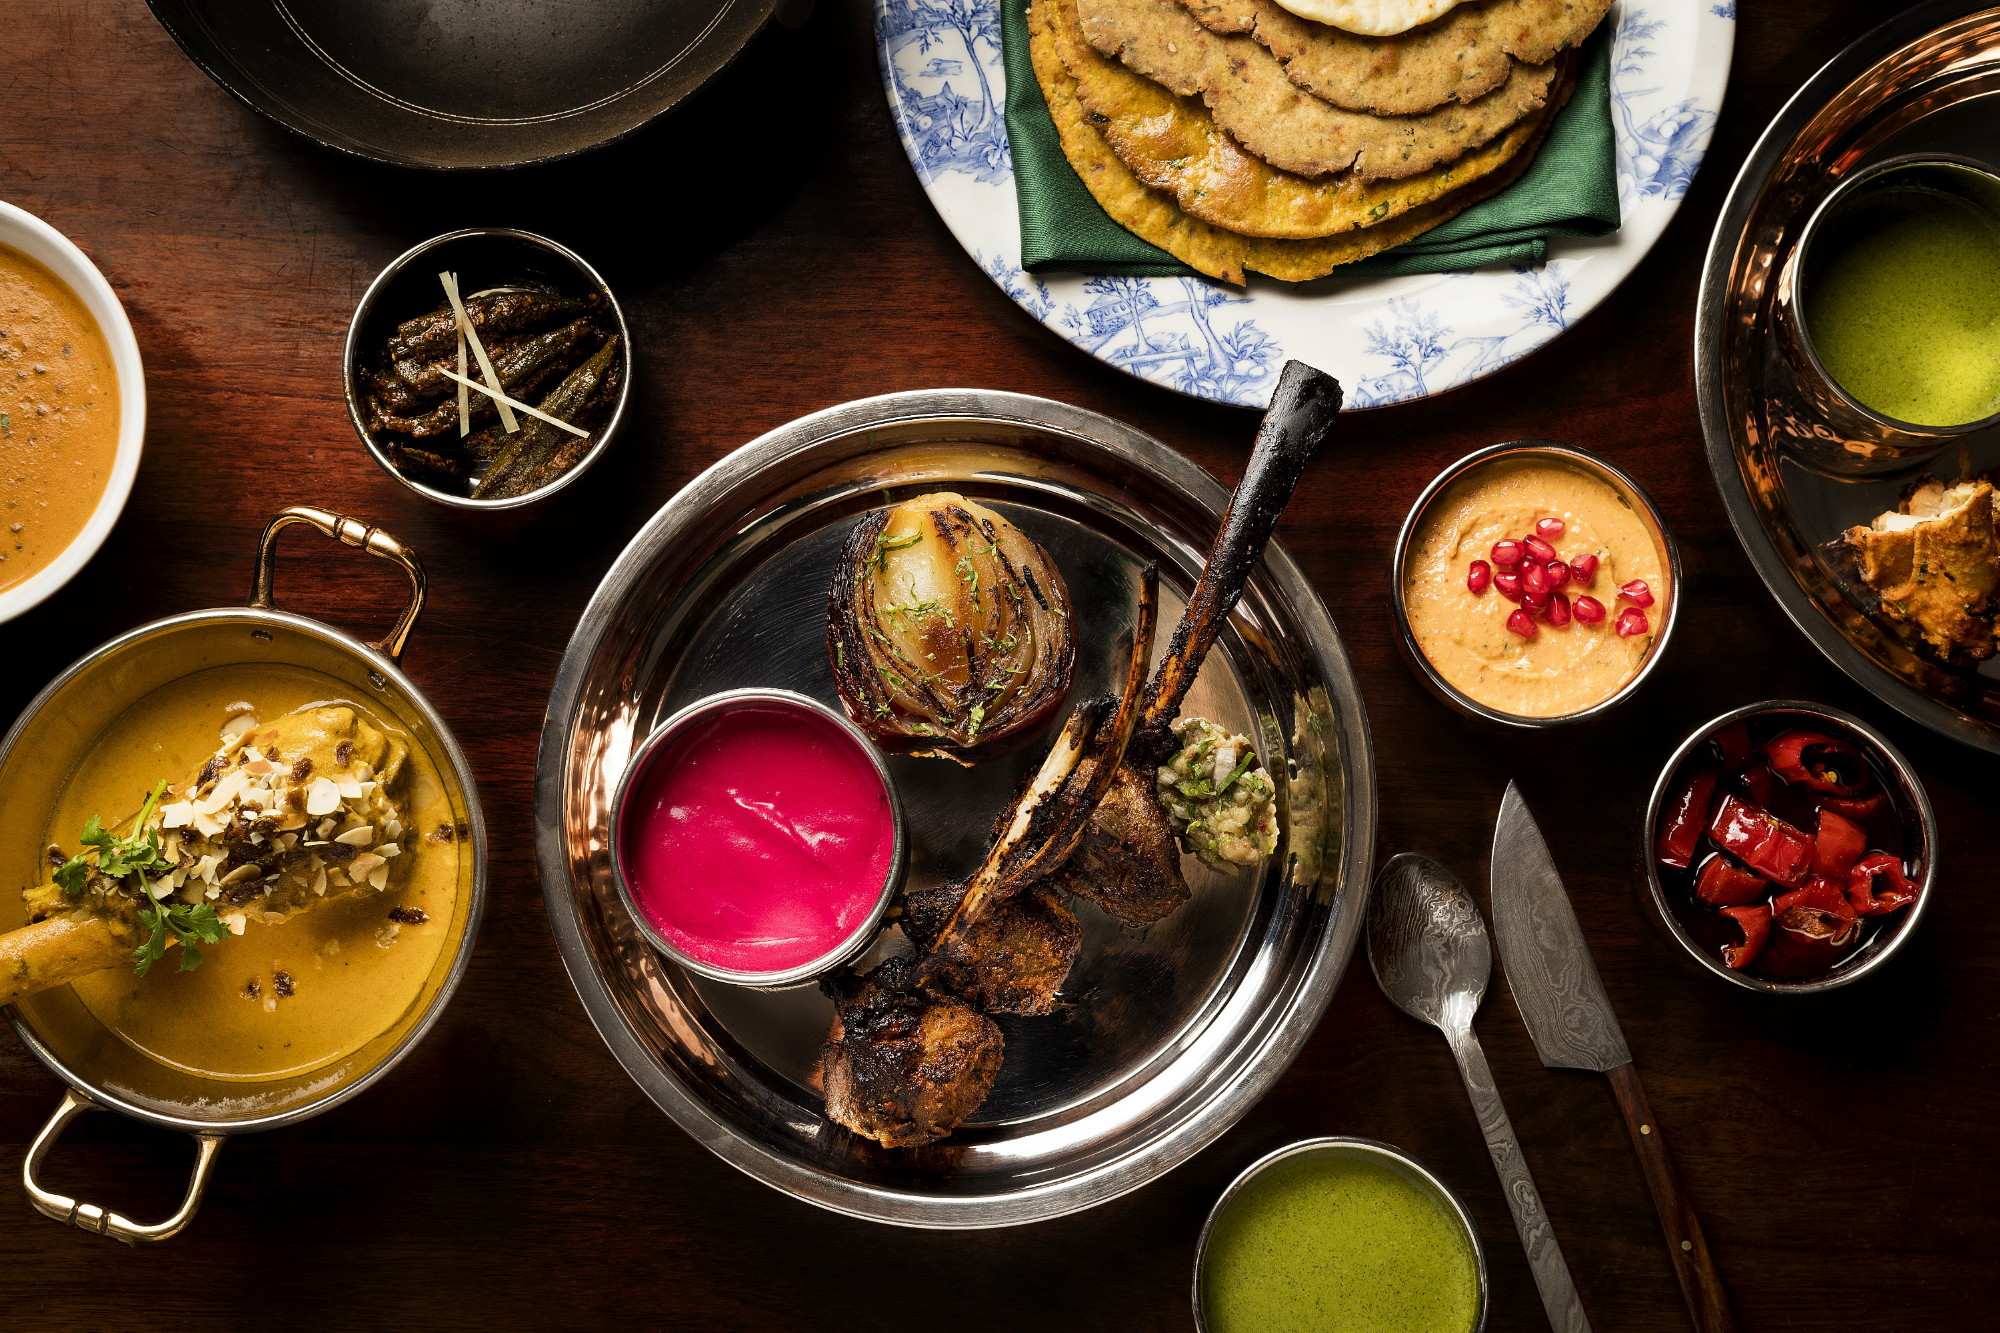 Review: The tandoor is the star at New Punjab Club